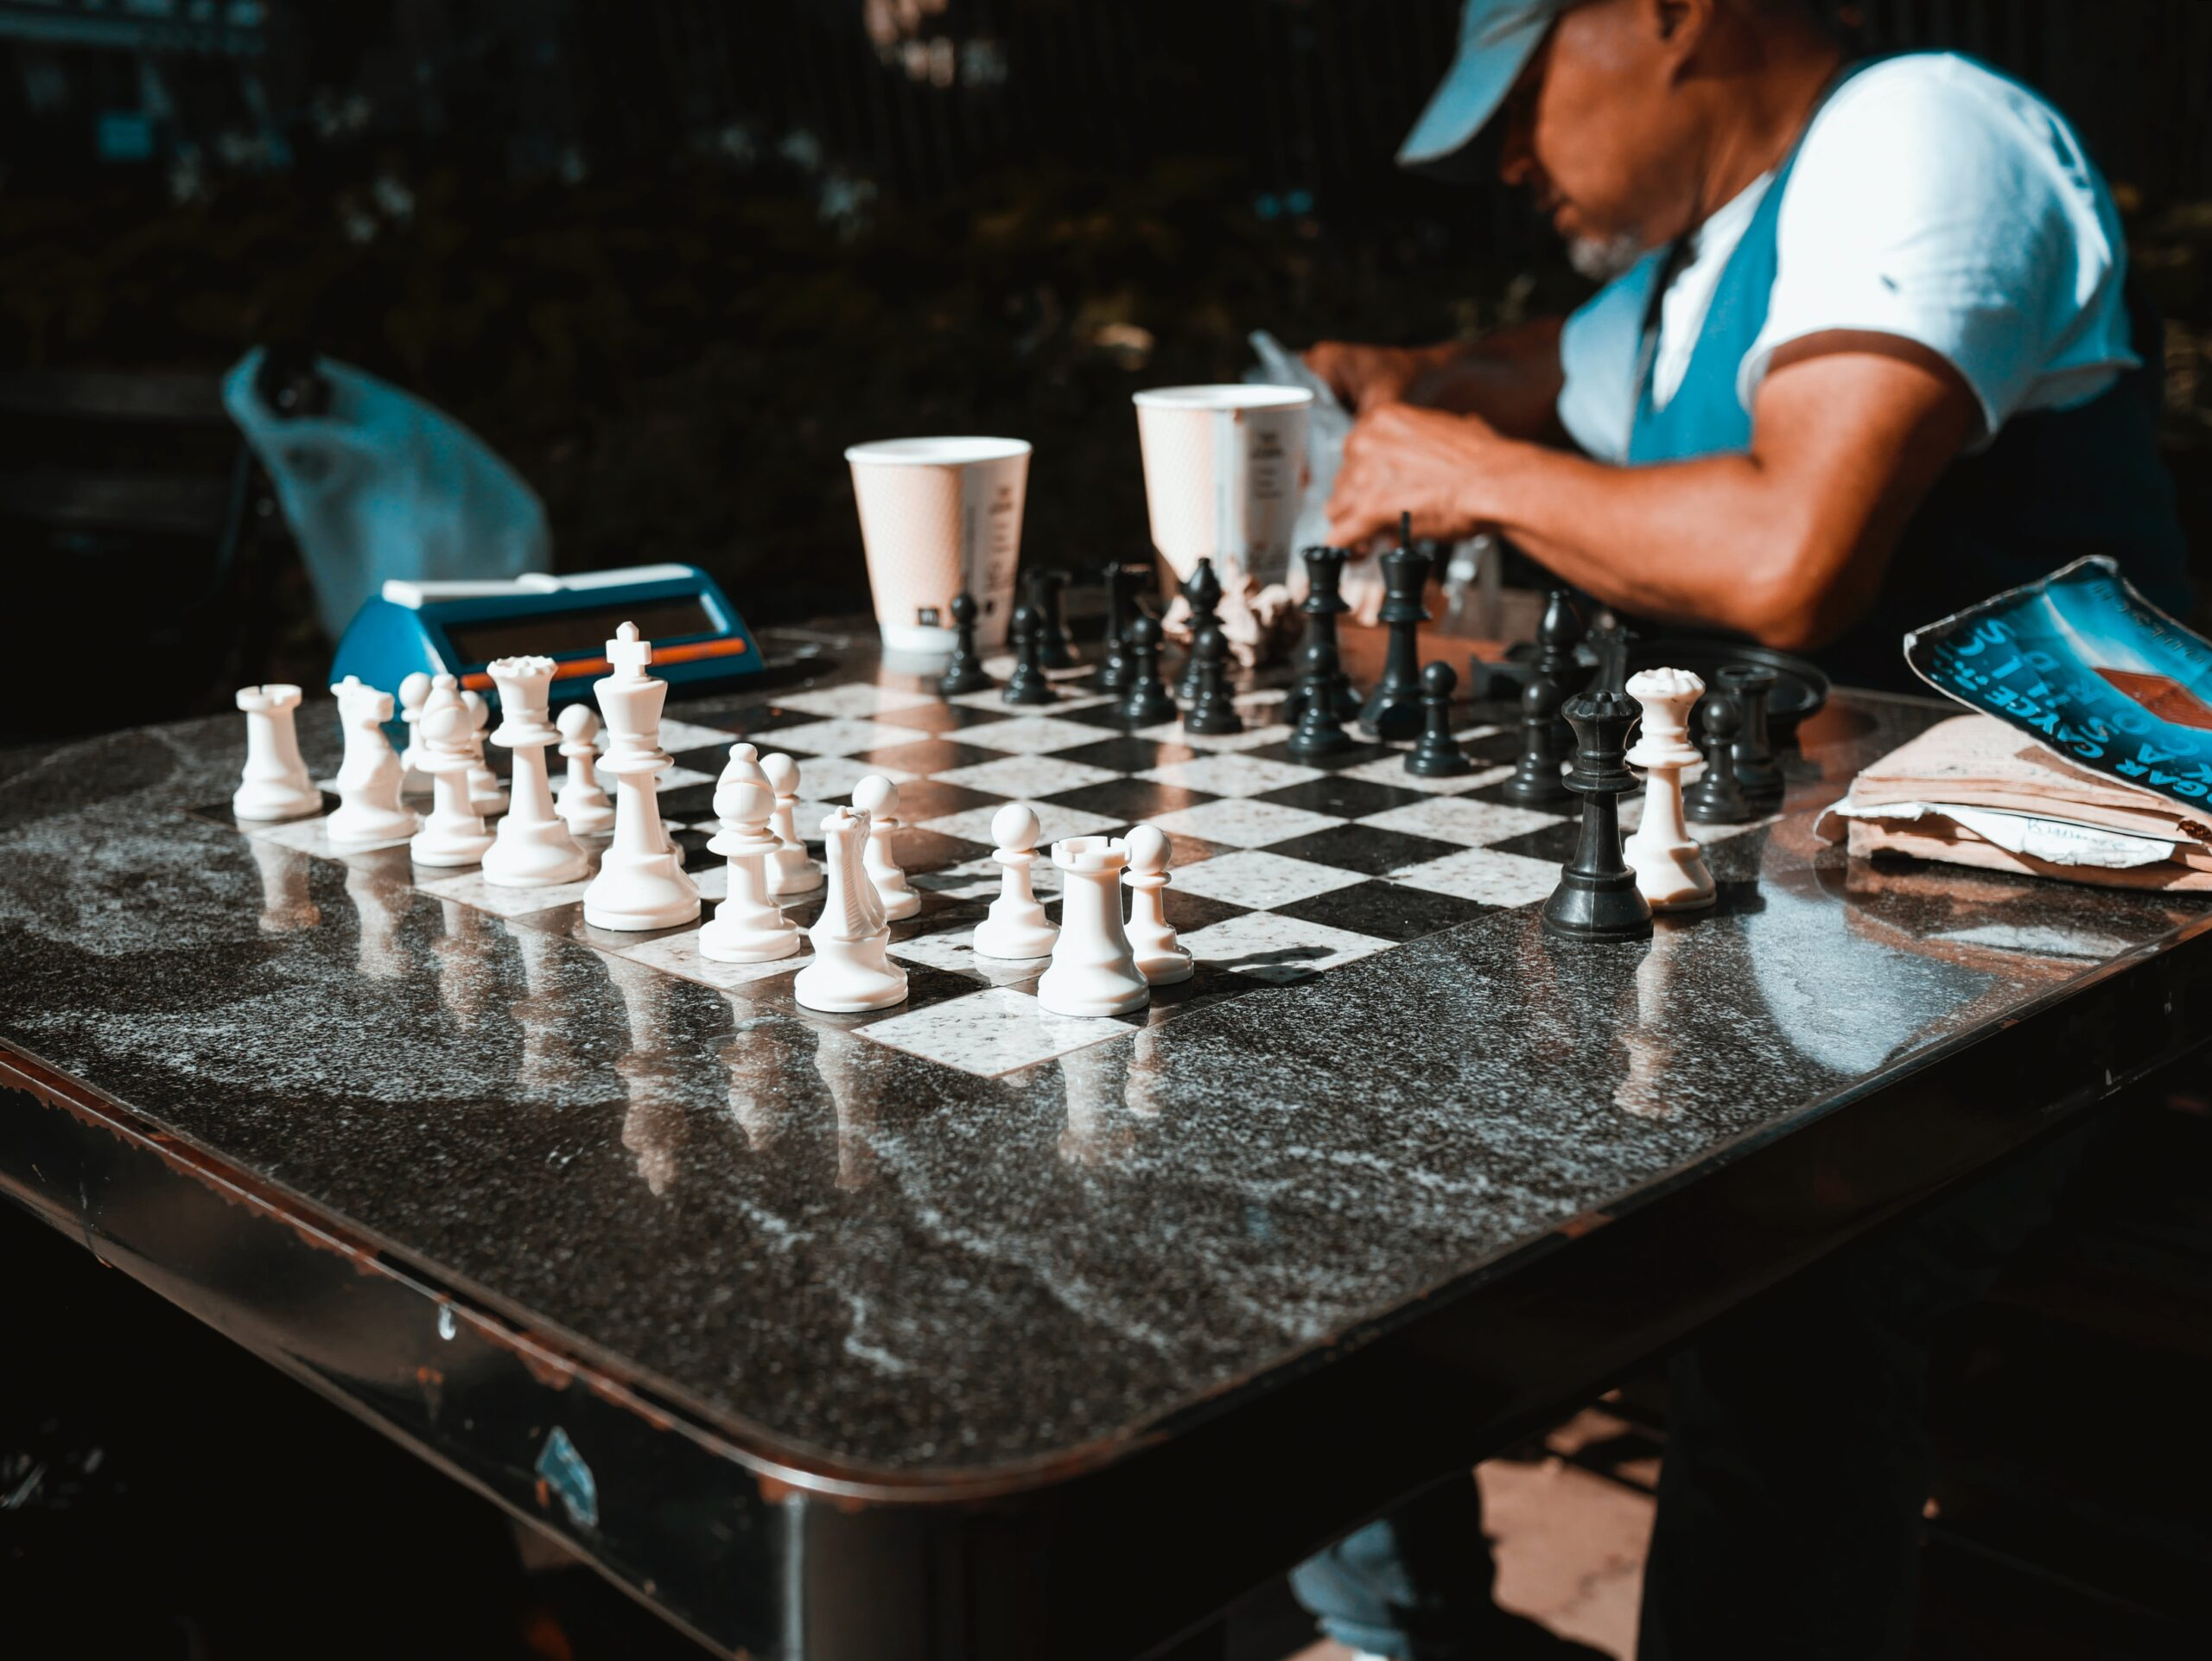 josh-appel-Man at marble chess table set and ready for match partner-unsplash